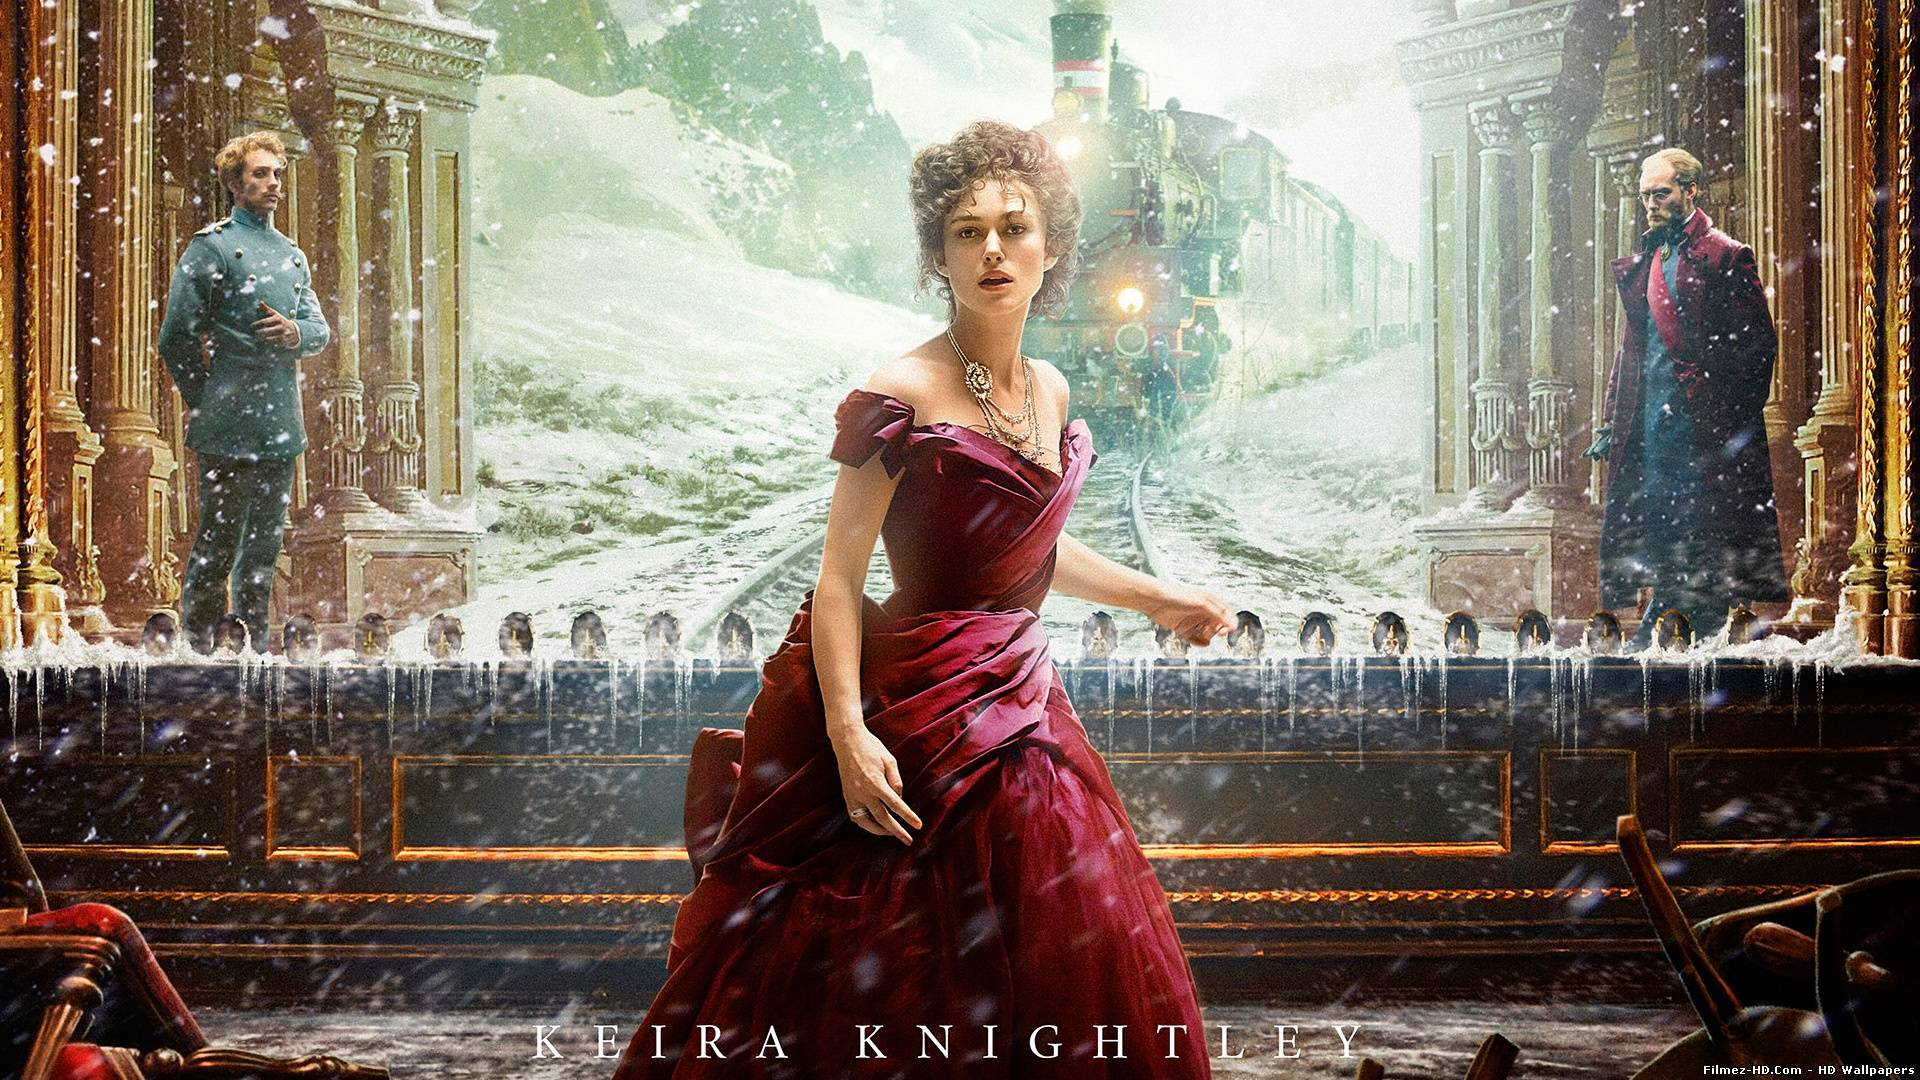 Keira Knightley as Anna Karenina Keira